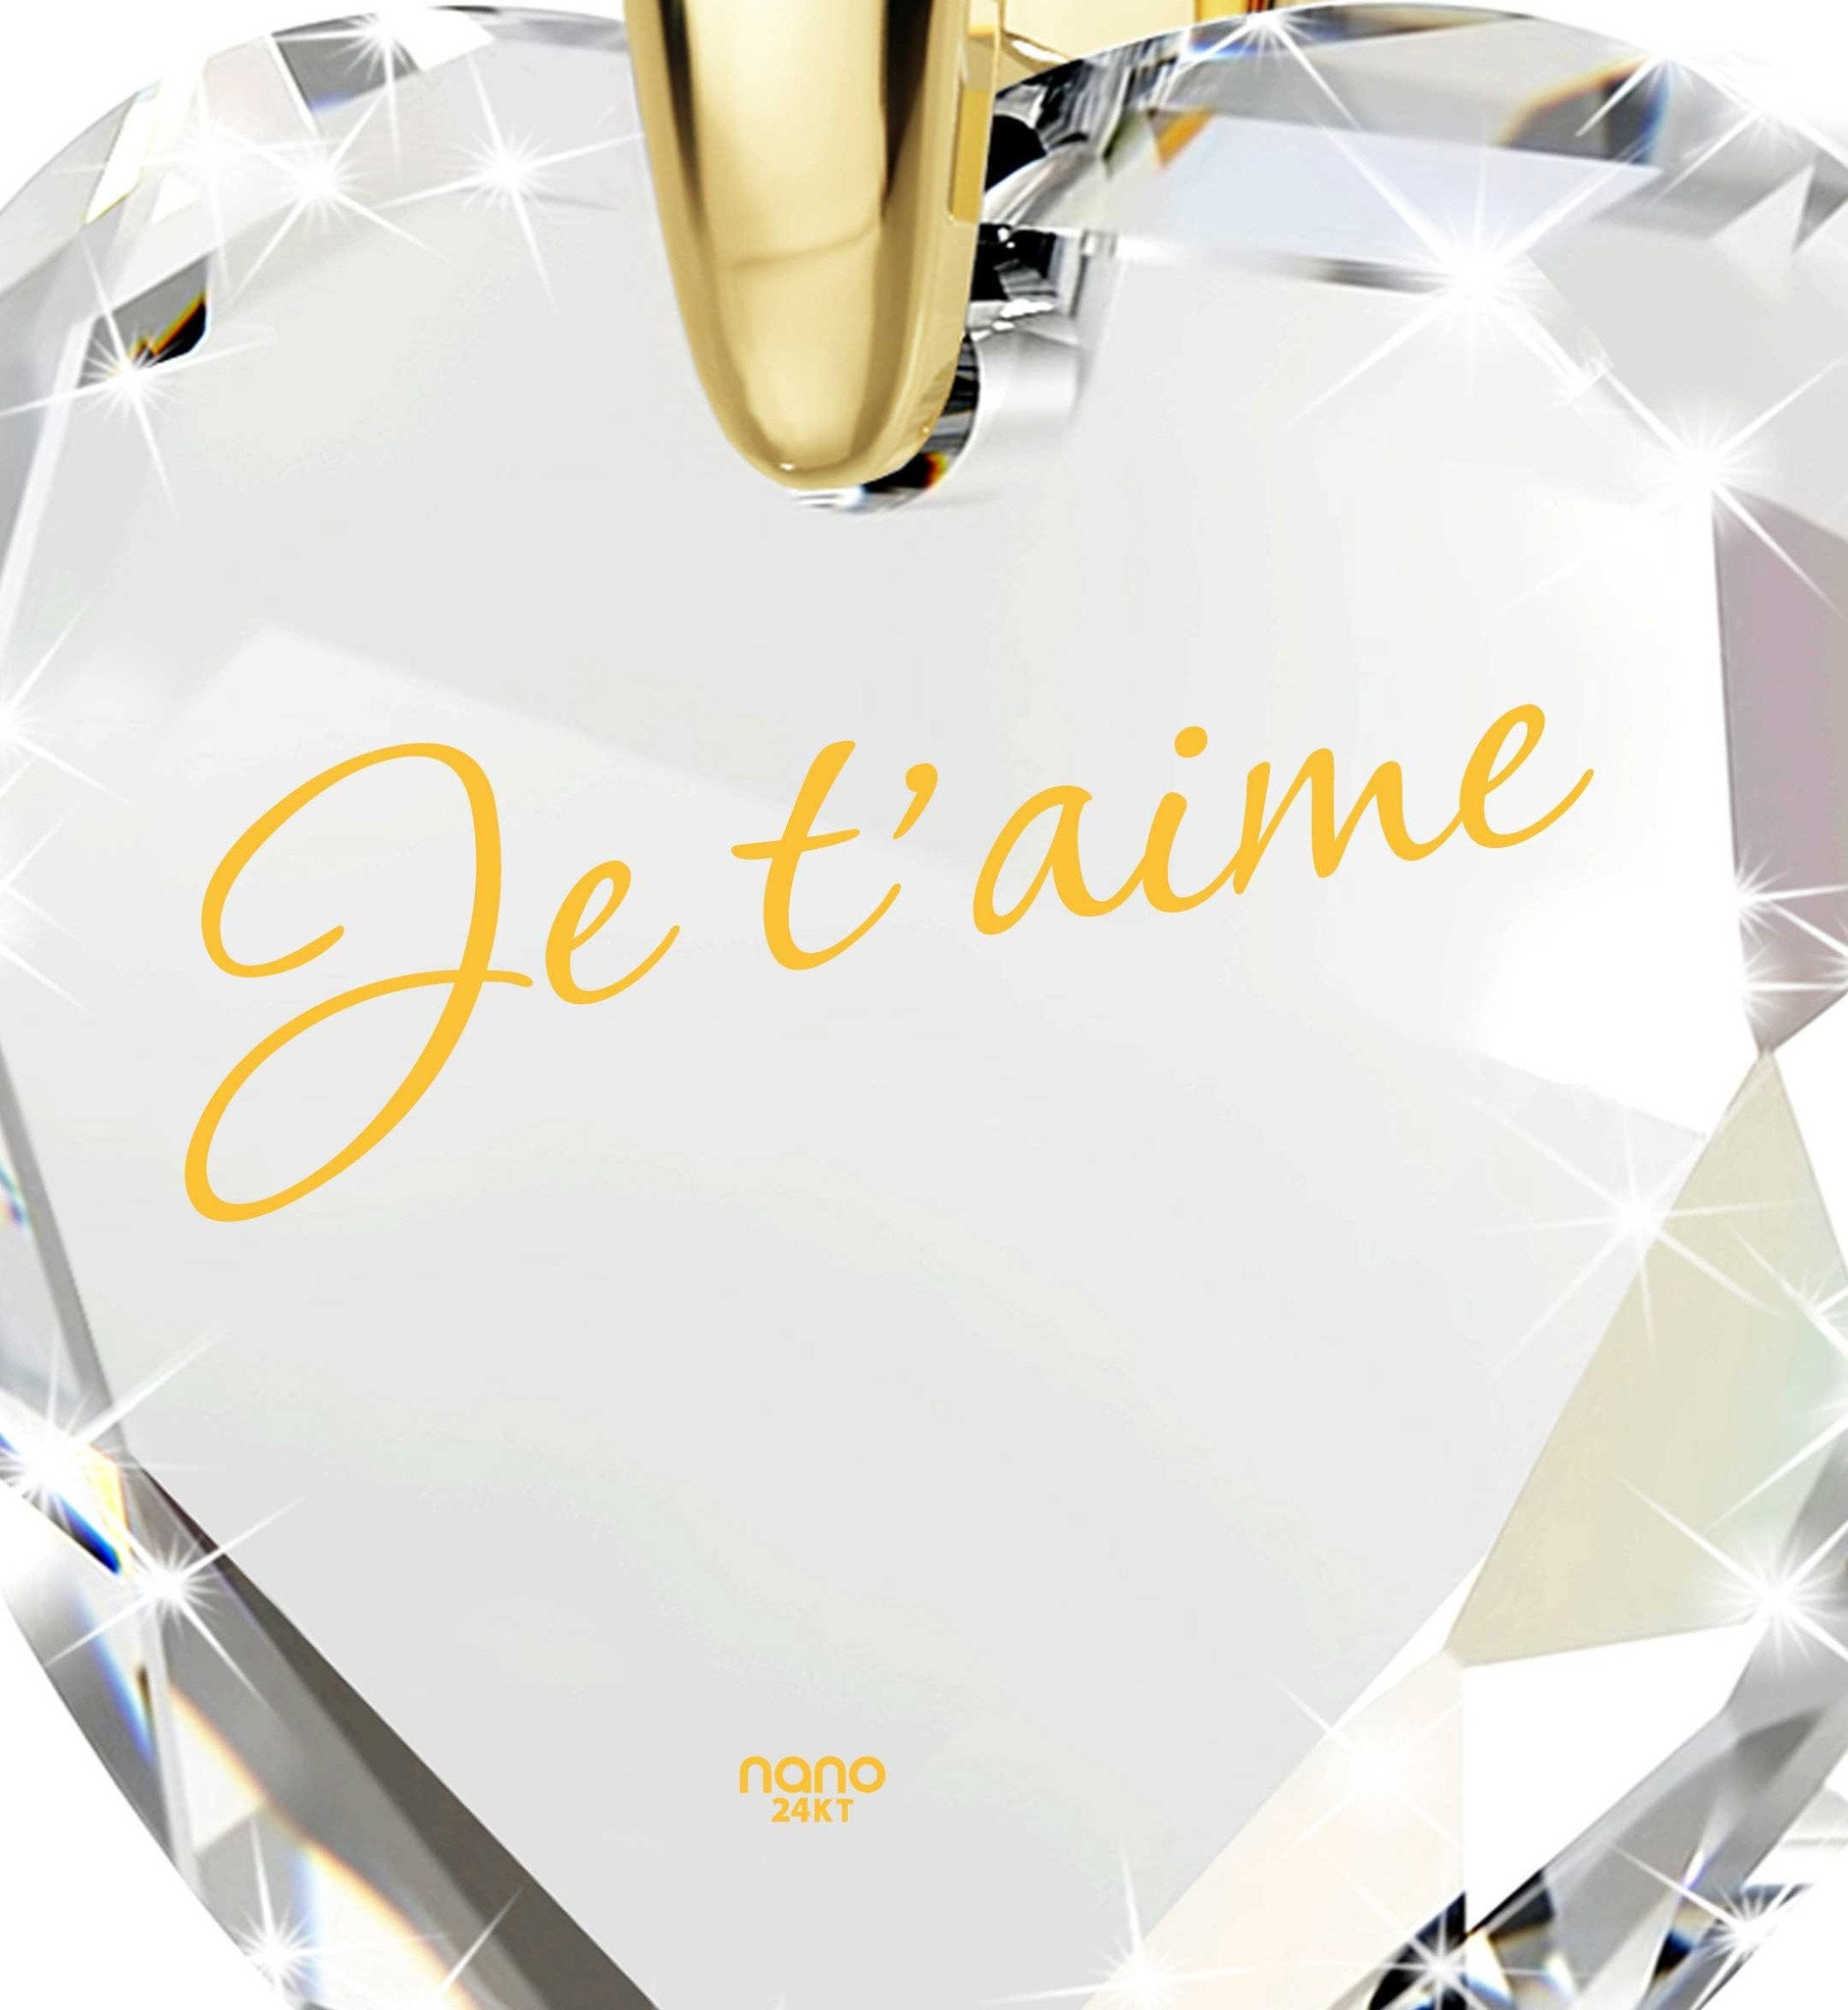 "Christmas Presents for Couples, 24k Engraved Jewelry,""Je T'aime"", 21 Birthday Gifts, Nano"